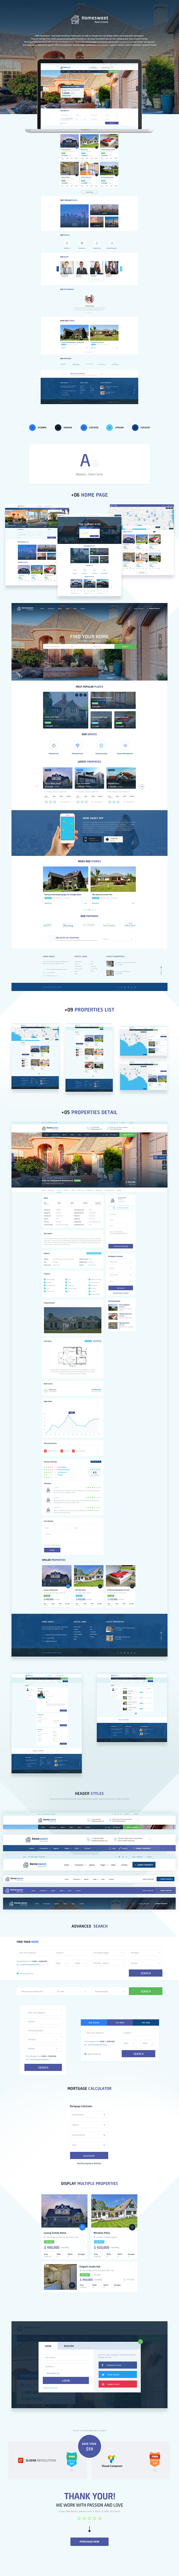 HomeSweet - Real Estate WordPress Theme - 1